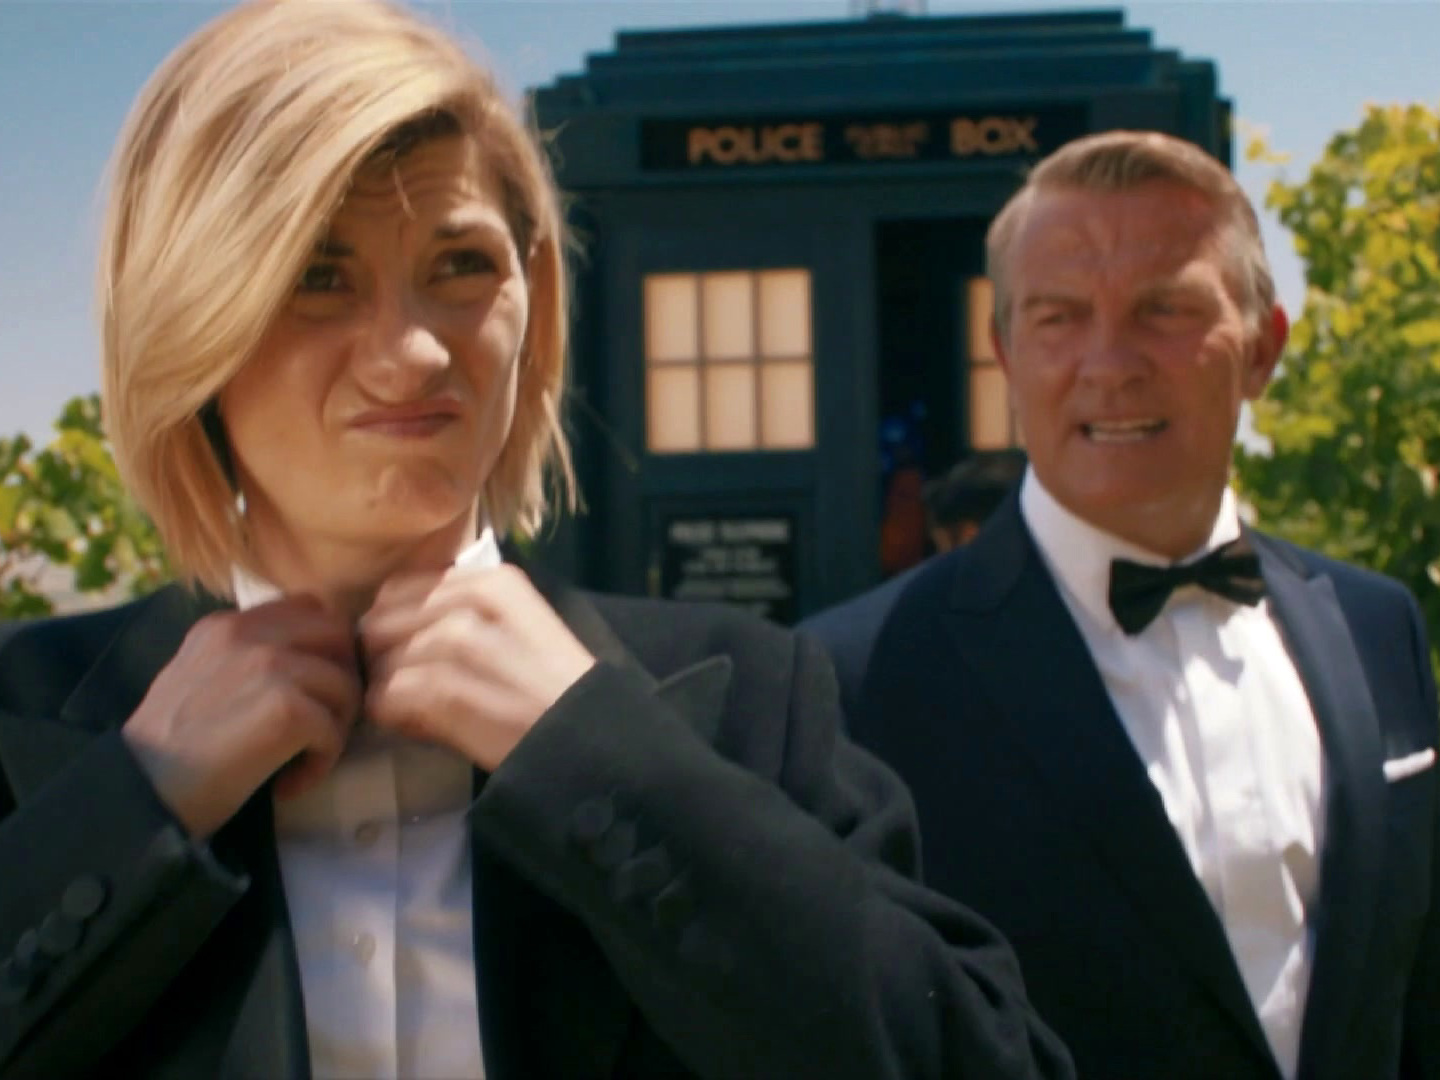 Doctor Who: Spies in Black Tie